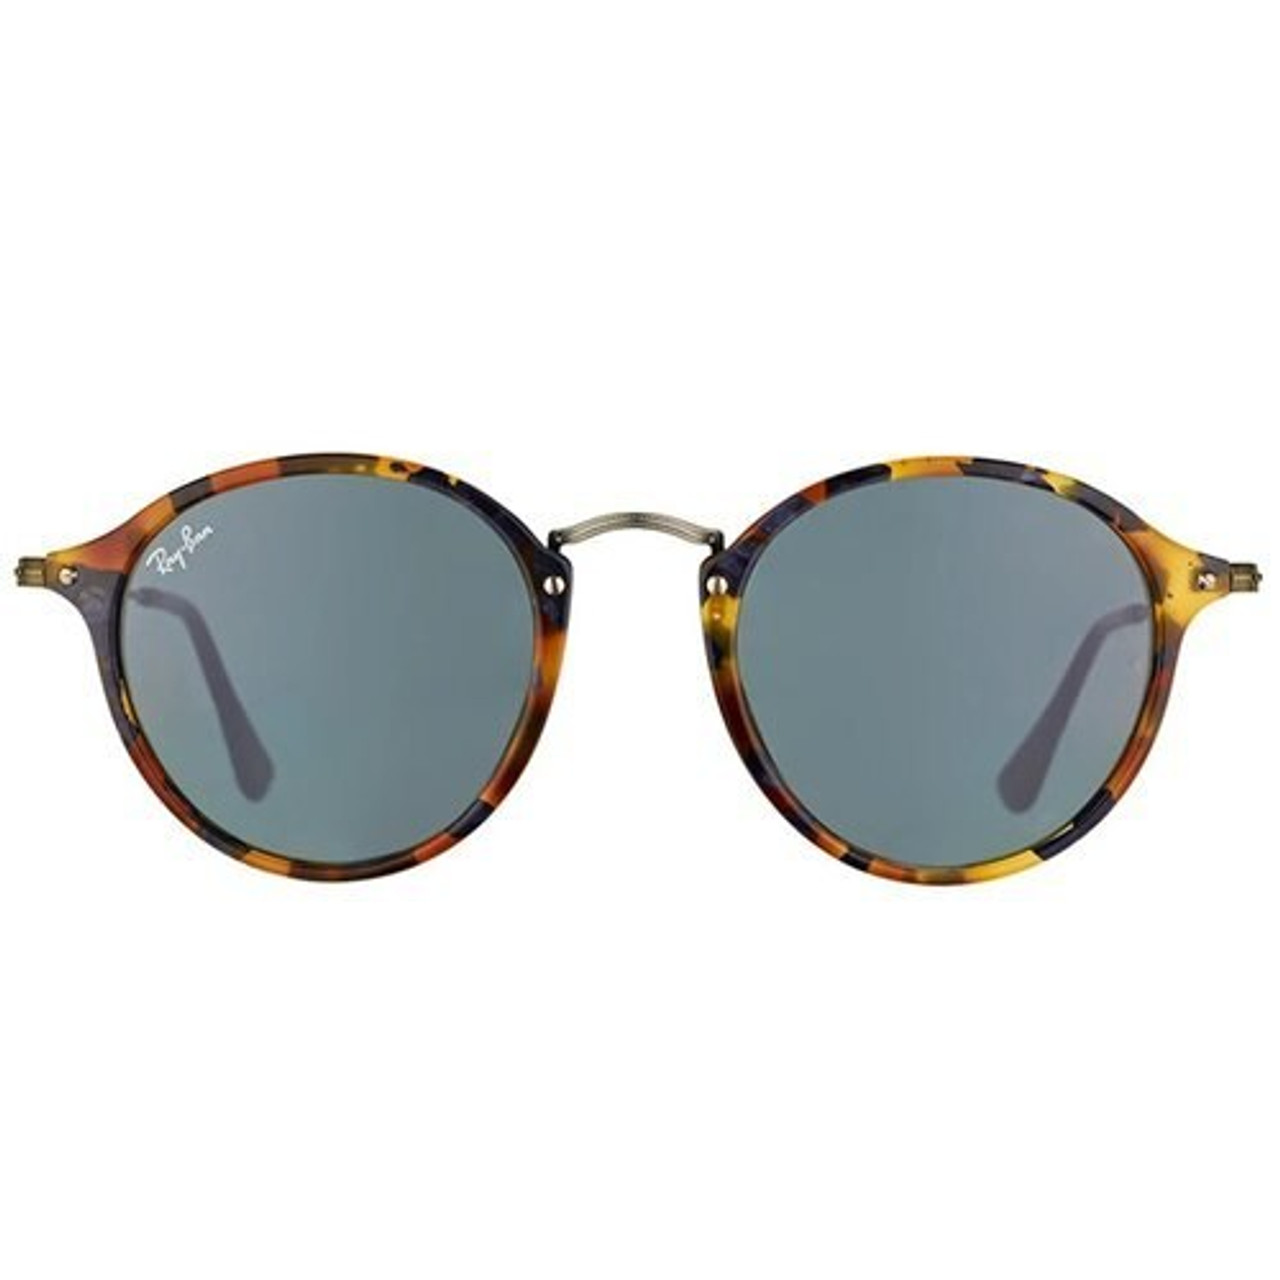 959cfd749 Ray-Ban Round RB2447 Fleck Classic Sunglasses In Spotted Blue Tortoise -  CHROME